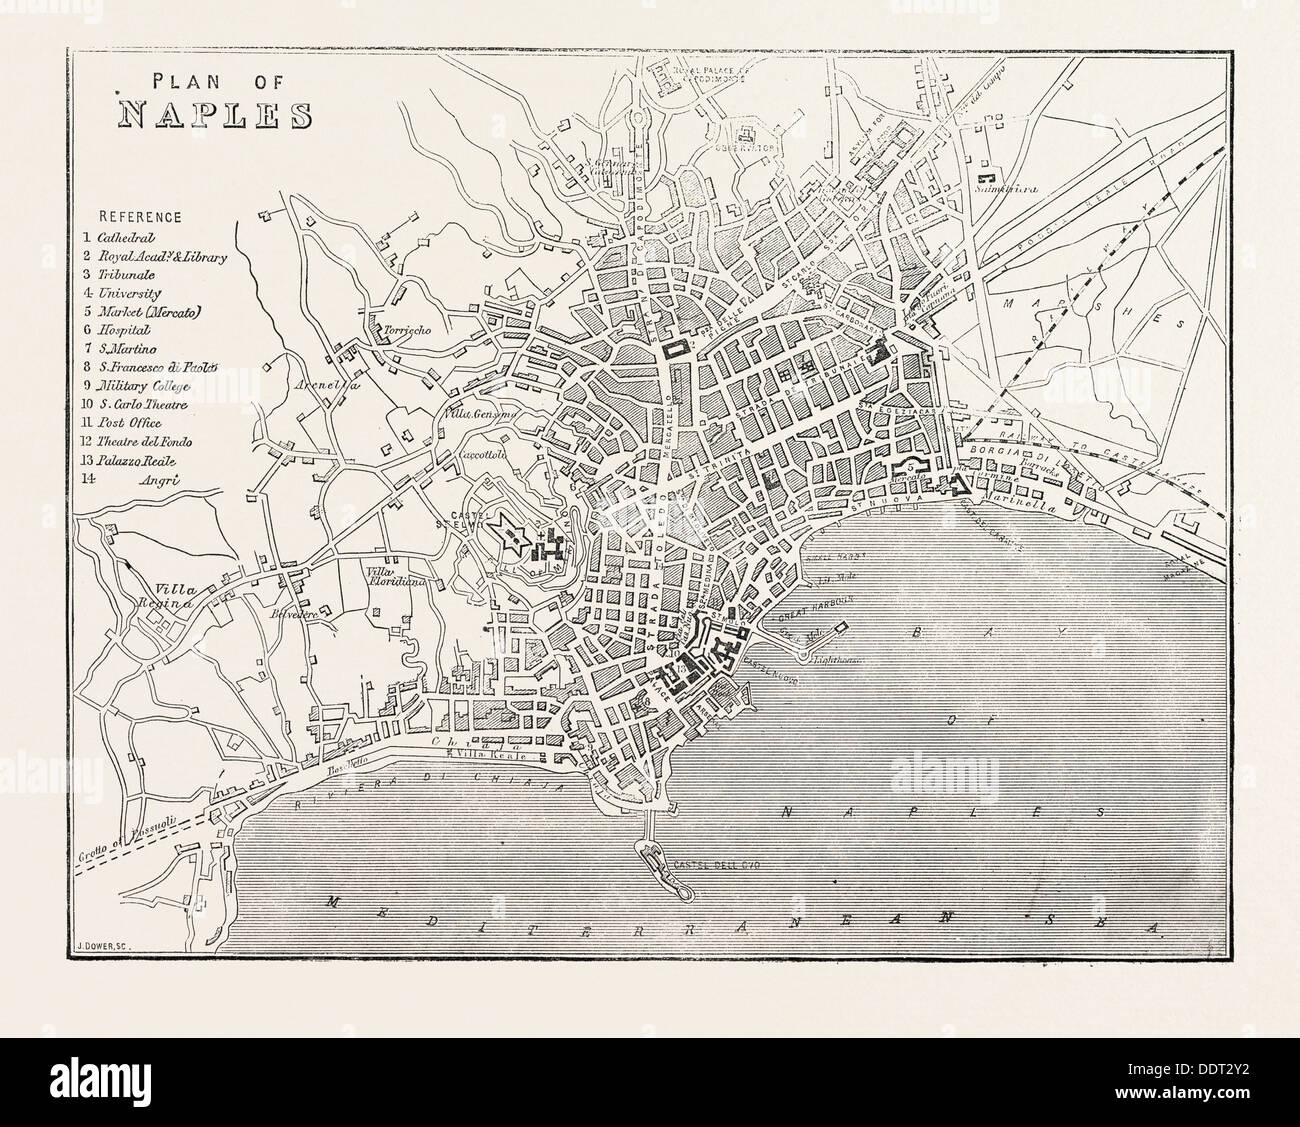 MAP OF NAPLES, ITALY, 1860 engraving - Stock Image